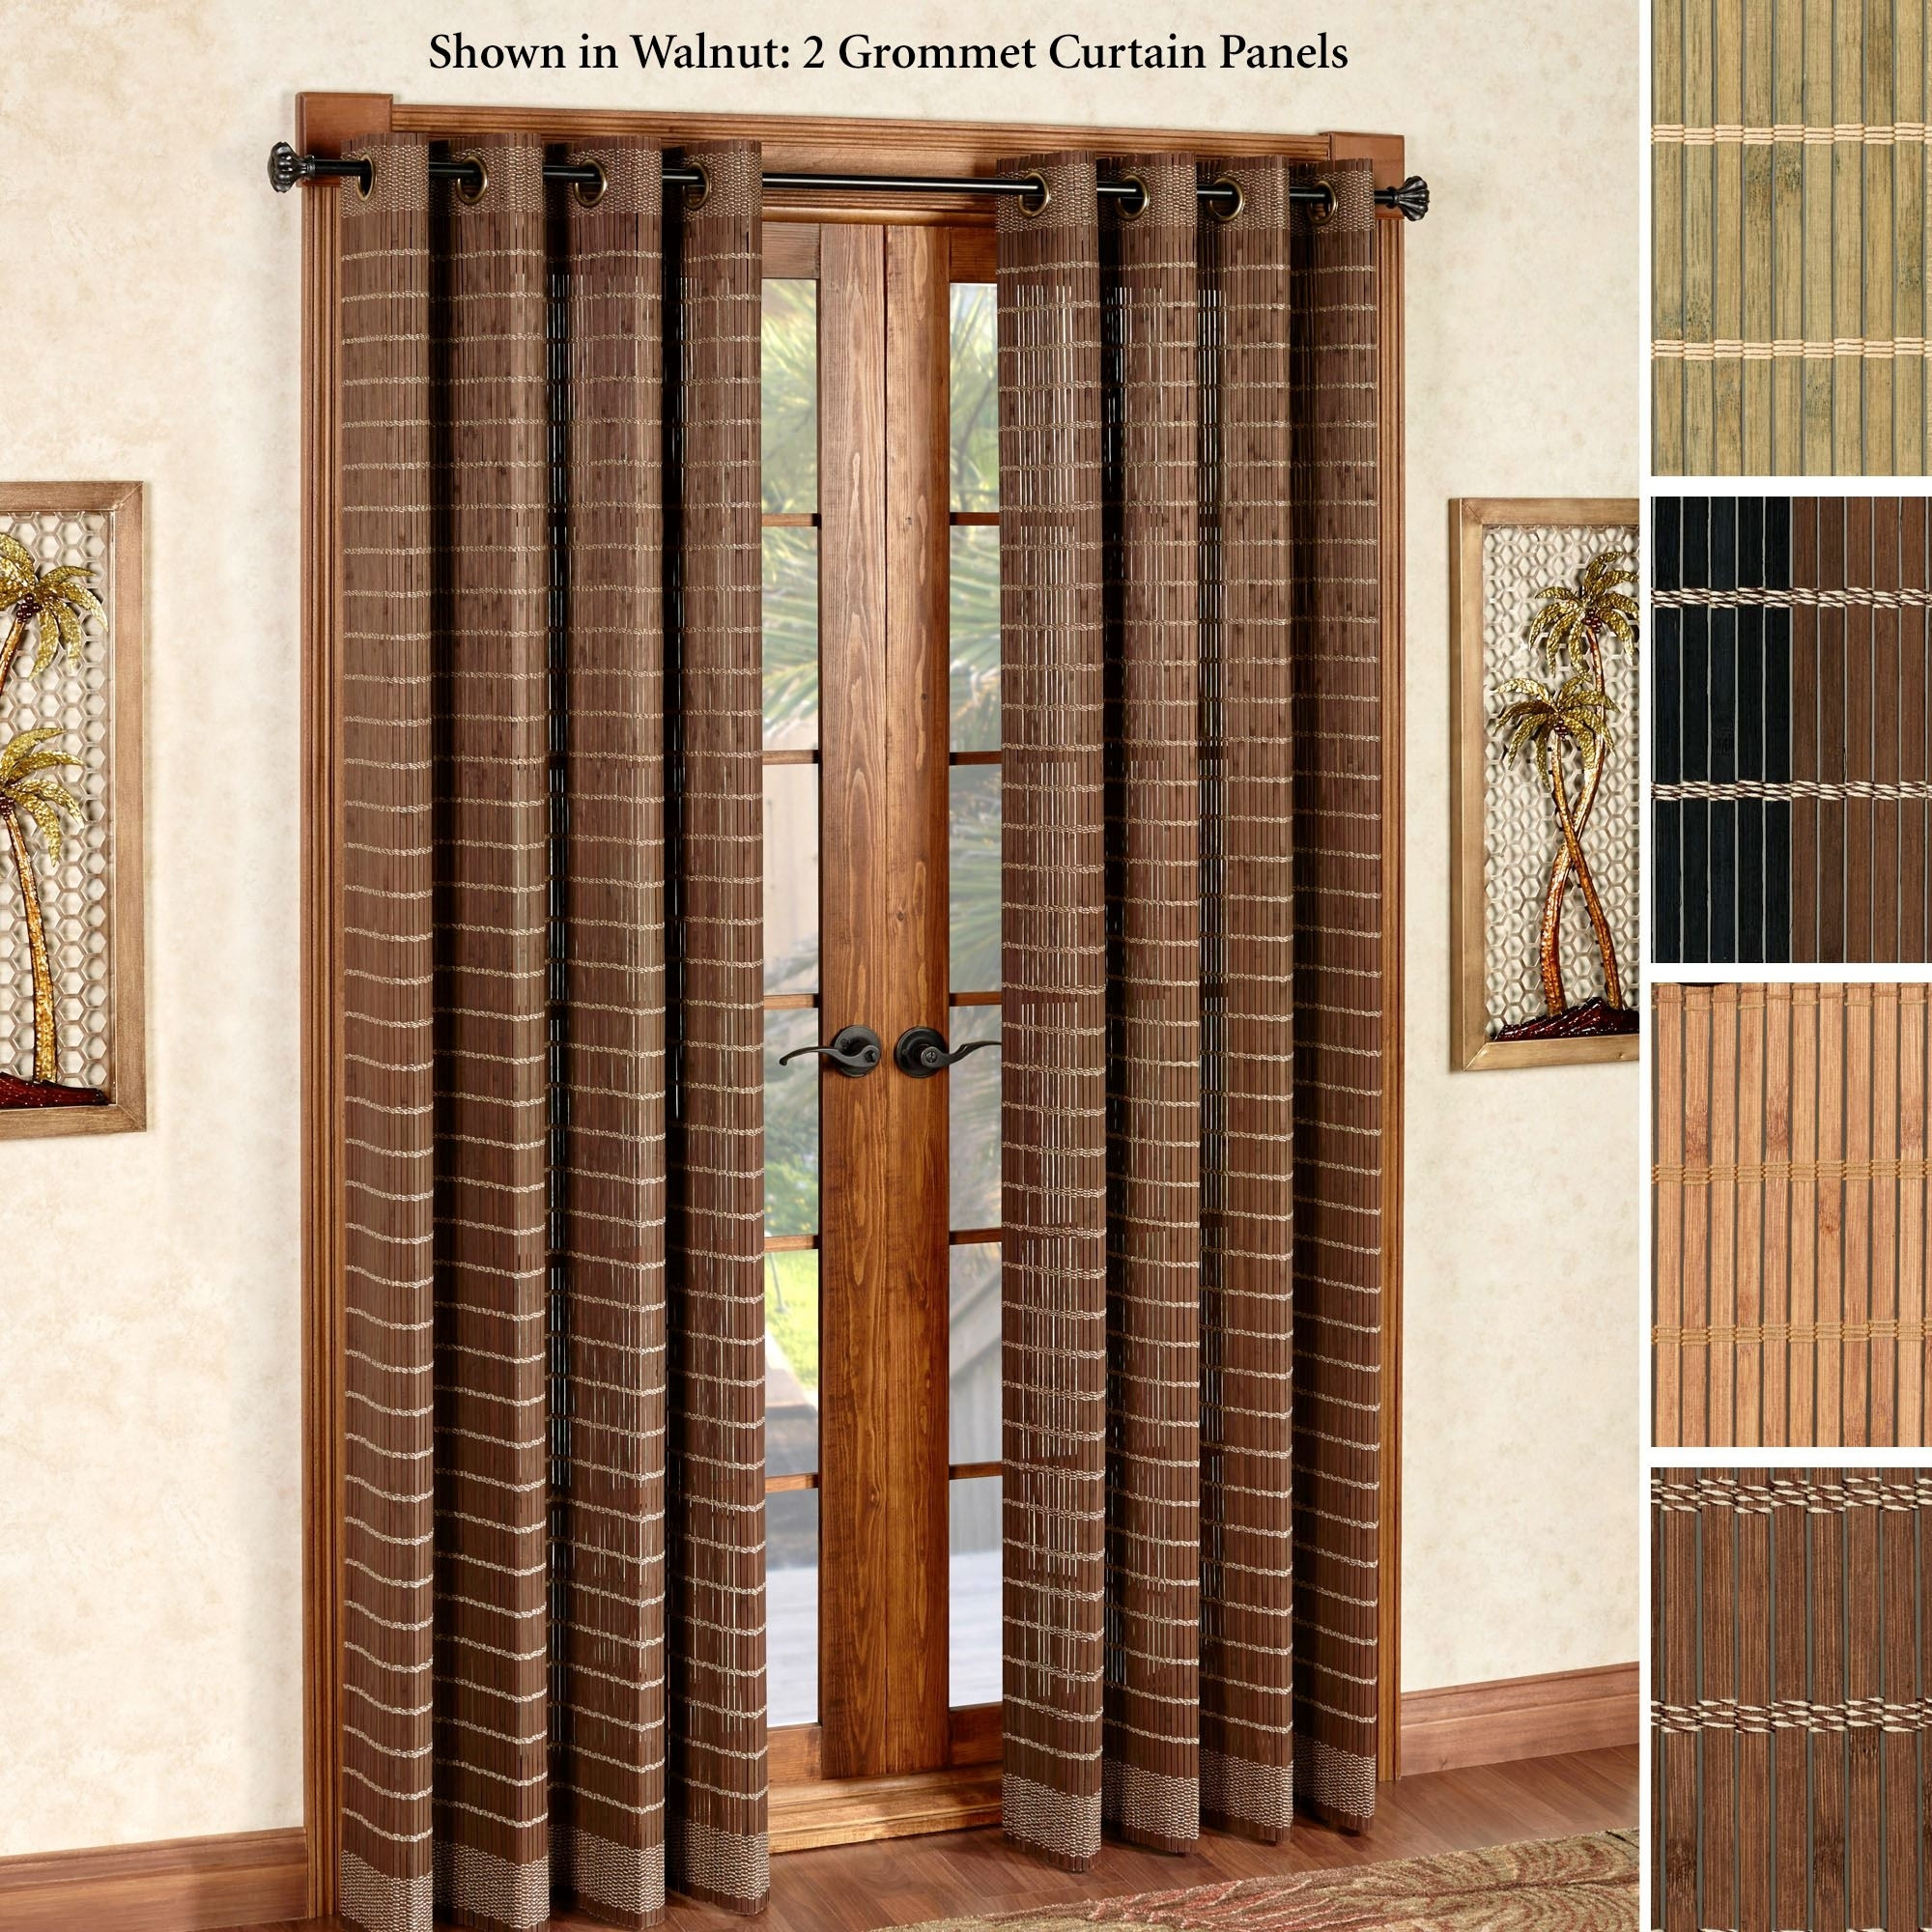 Best ideas about Patio Door Curtain Ideas . Save or Pin Door Curtain Ideas & Sliding Door Curtain Ideas Patio Door Now.